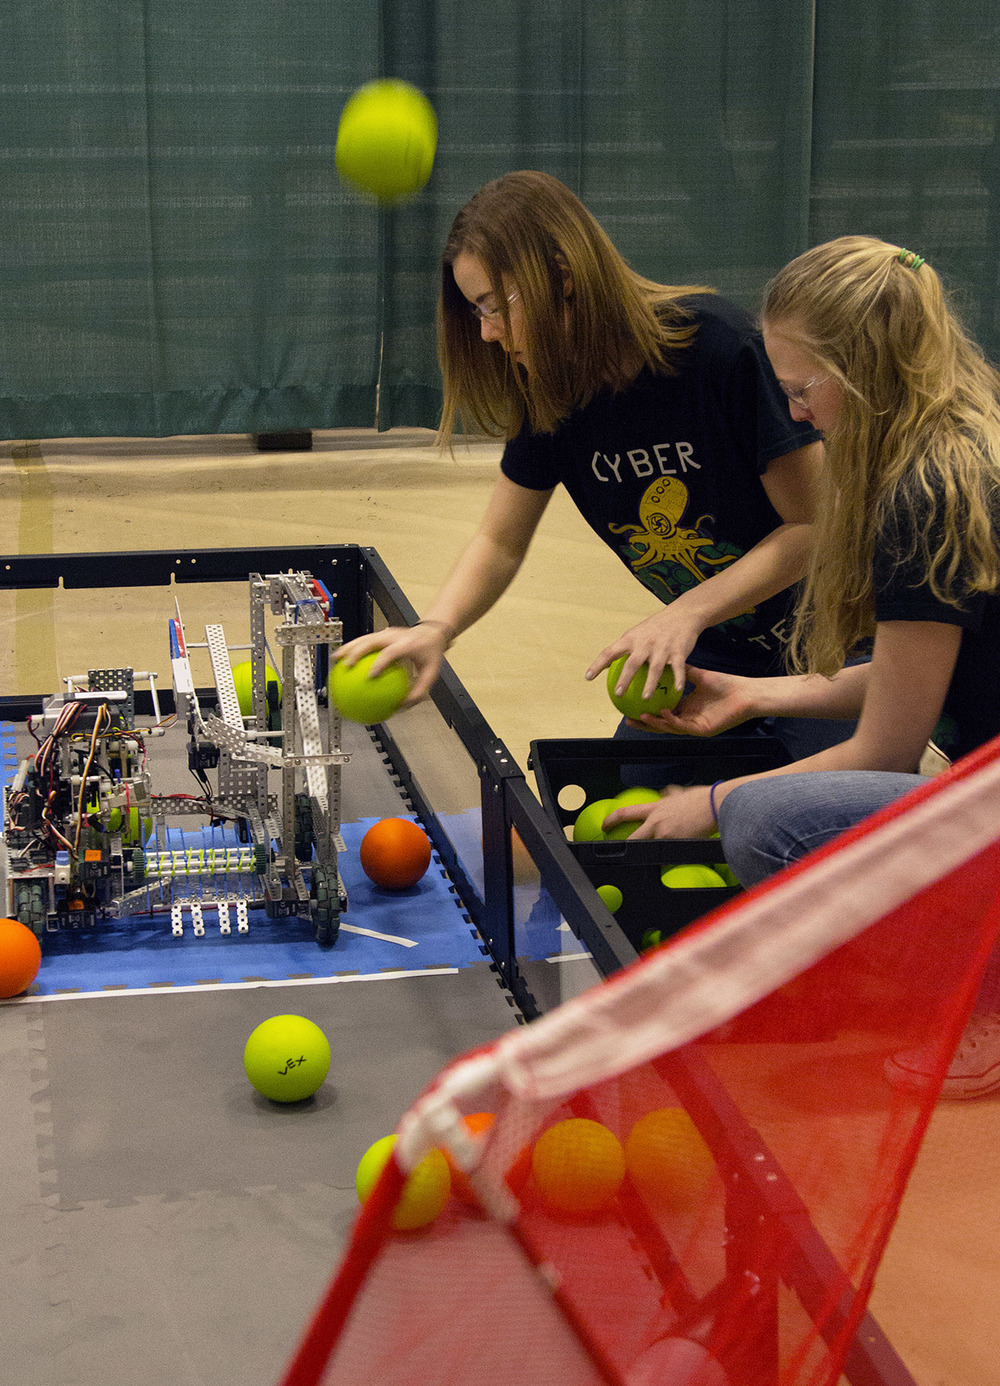 From left, Hannah Engler, 15, and Kaitlyn De Kan, 17, add styrofoam balls to their robot during the VEX Missouri State Robotics Championship in Rolla Saturday, Feb. 20, 2016. The purpose of their robot was to shoot as many balls into the net as it could before time ran out.